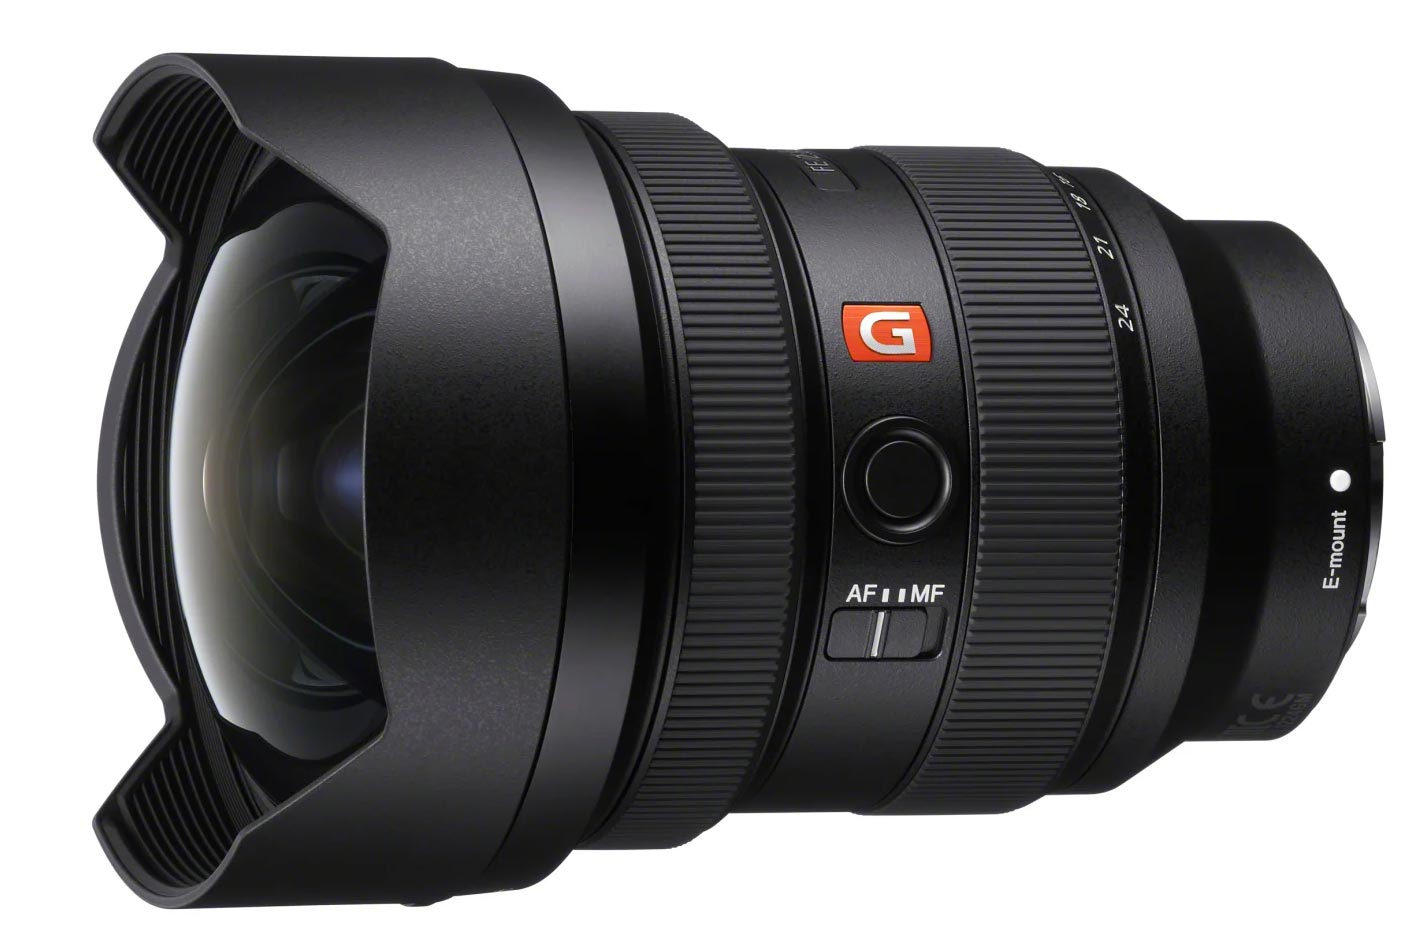 Sony FE 12-24mm F2.8 GM: the world's widest zoom with constant F2.8 aperture